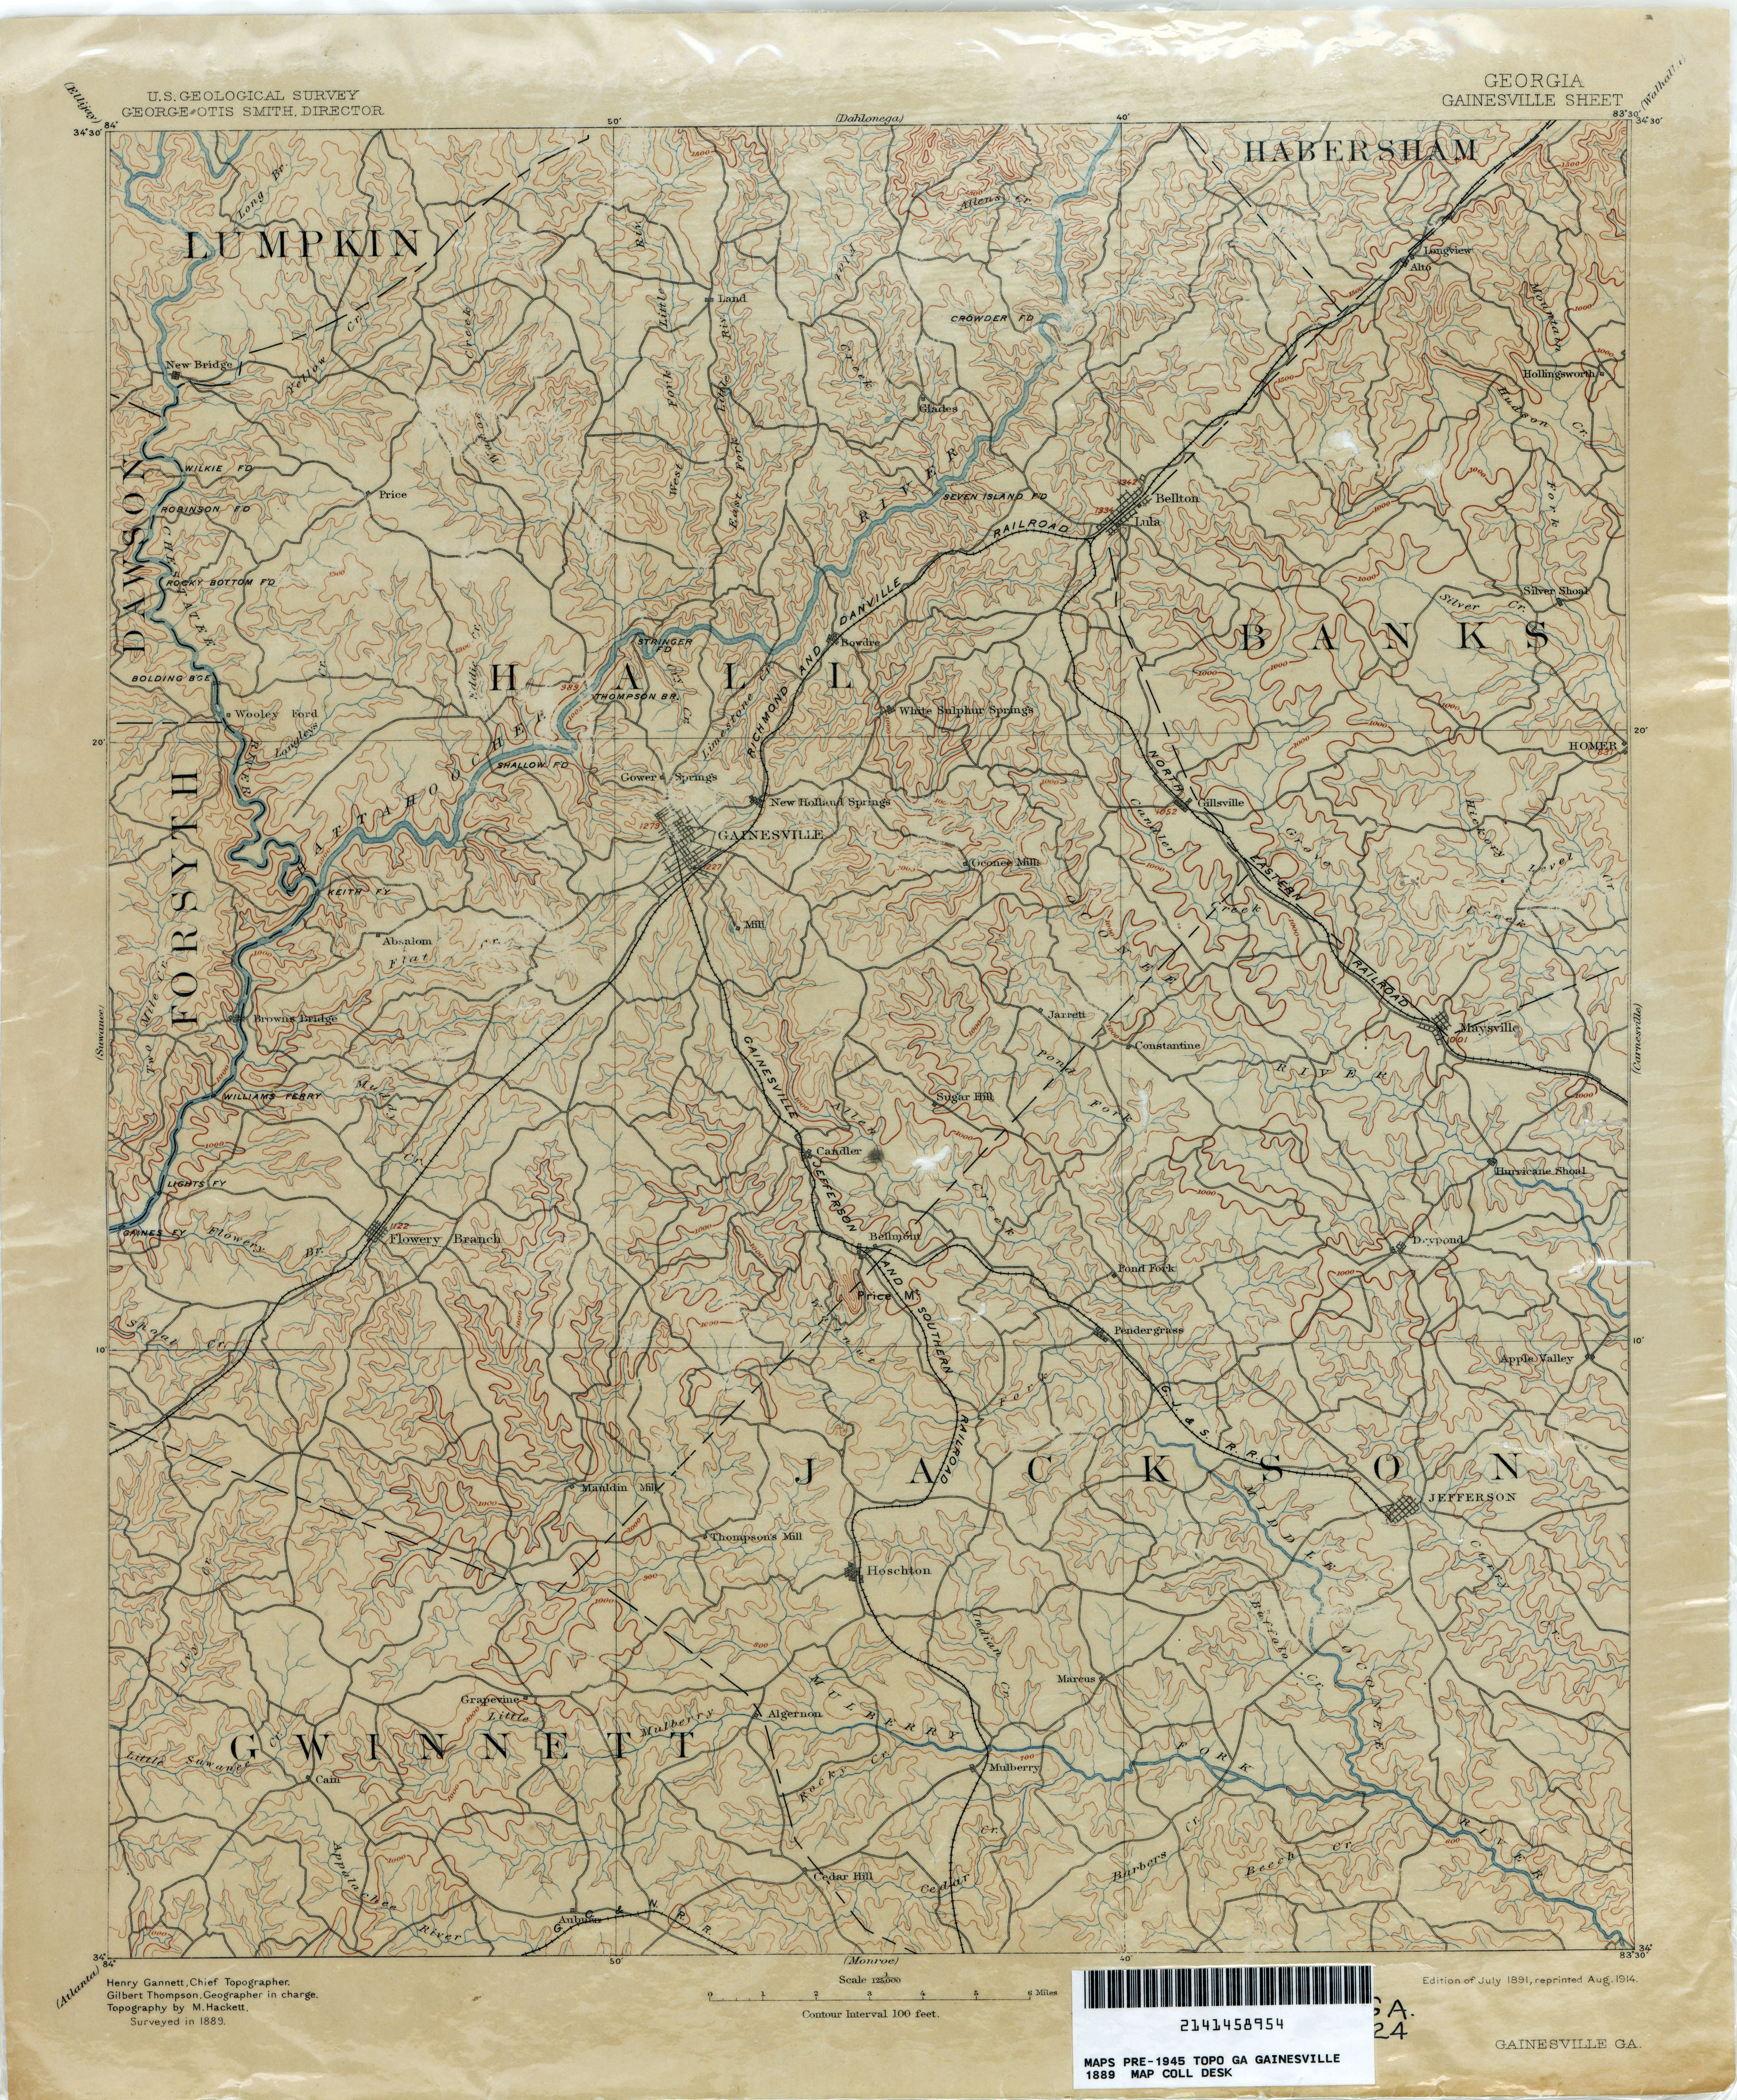 Map Of Old Georgia.Georgia Historical Topographic Maps Perry Castaneda Map Collection